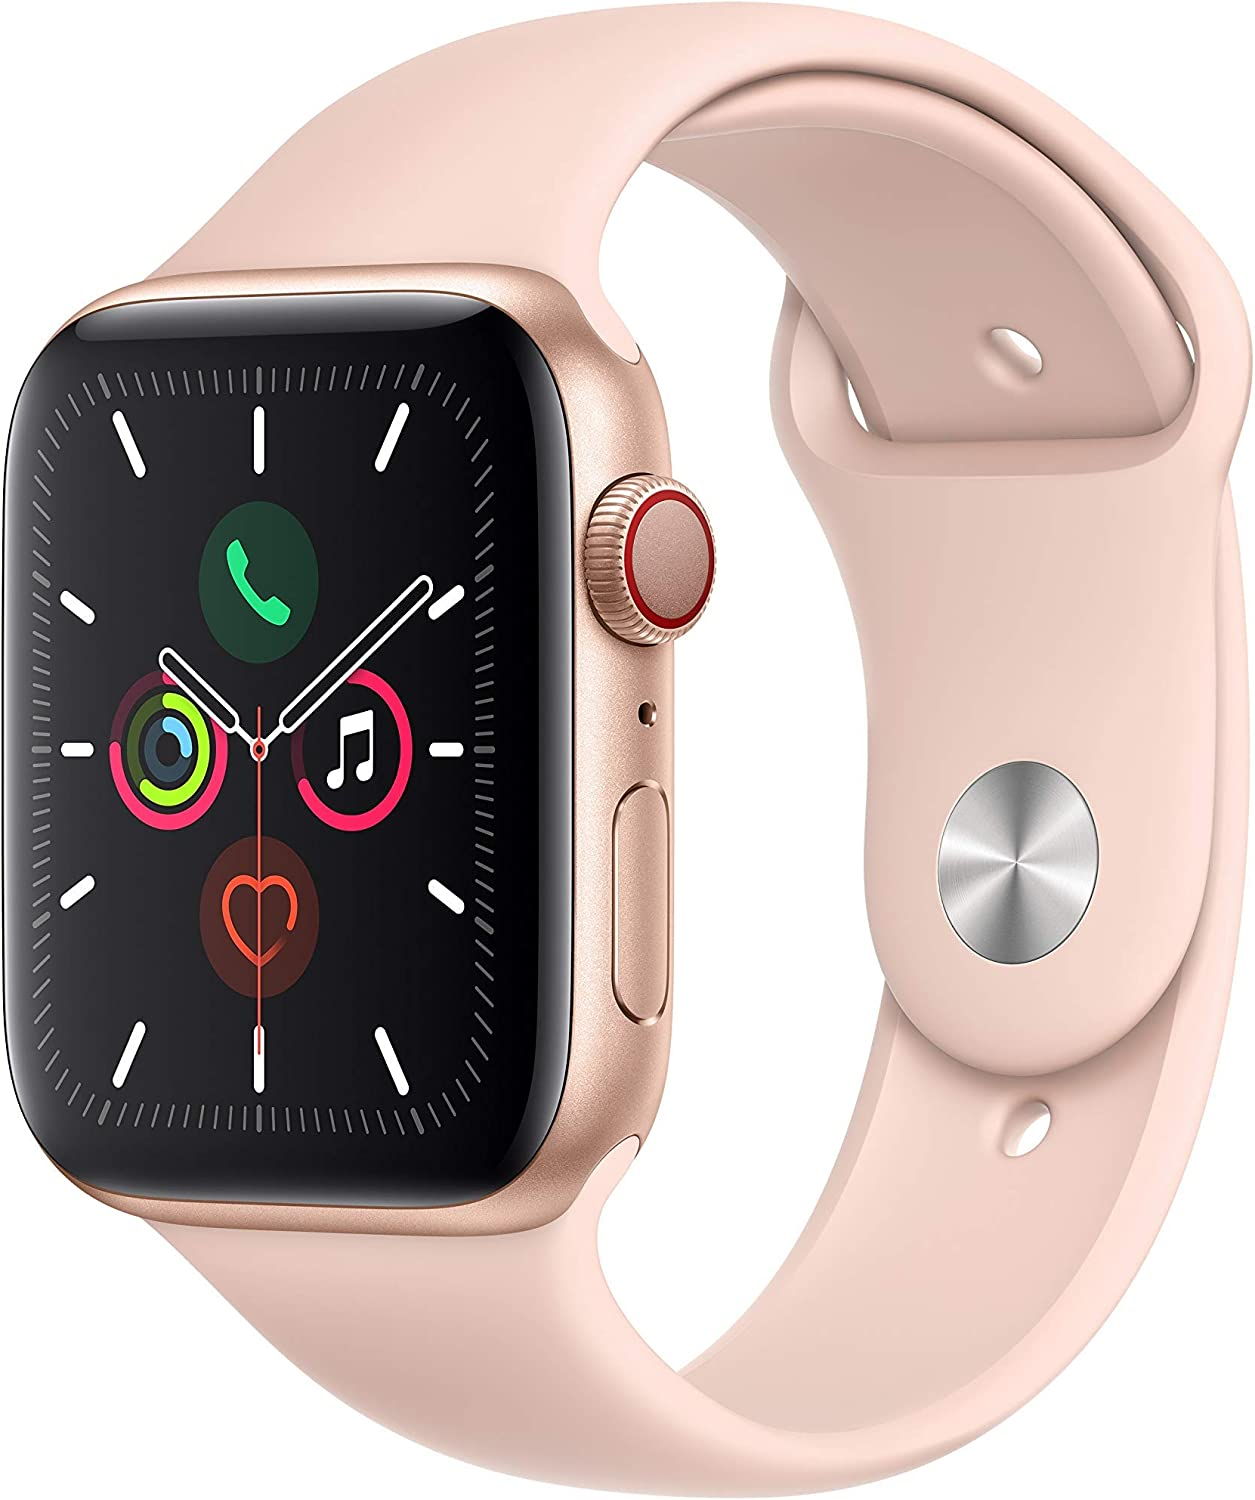 Apple Watch Series 5 (GPS + Cellular, 44MM) - Gold Aluminum Case with Pink Sand Sport Band (Renewed)